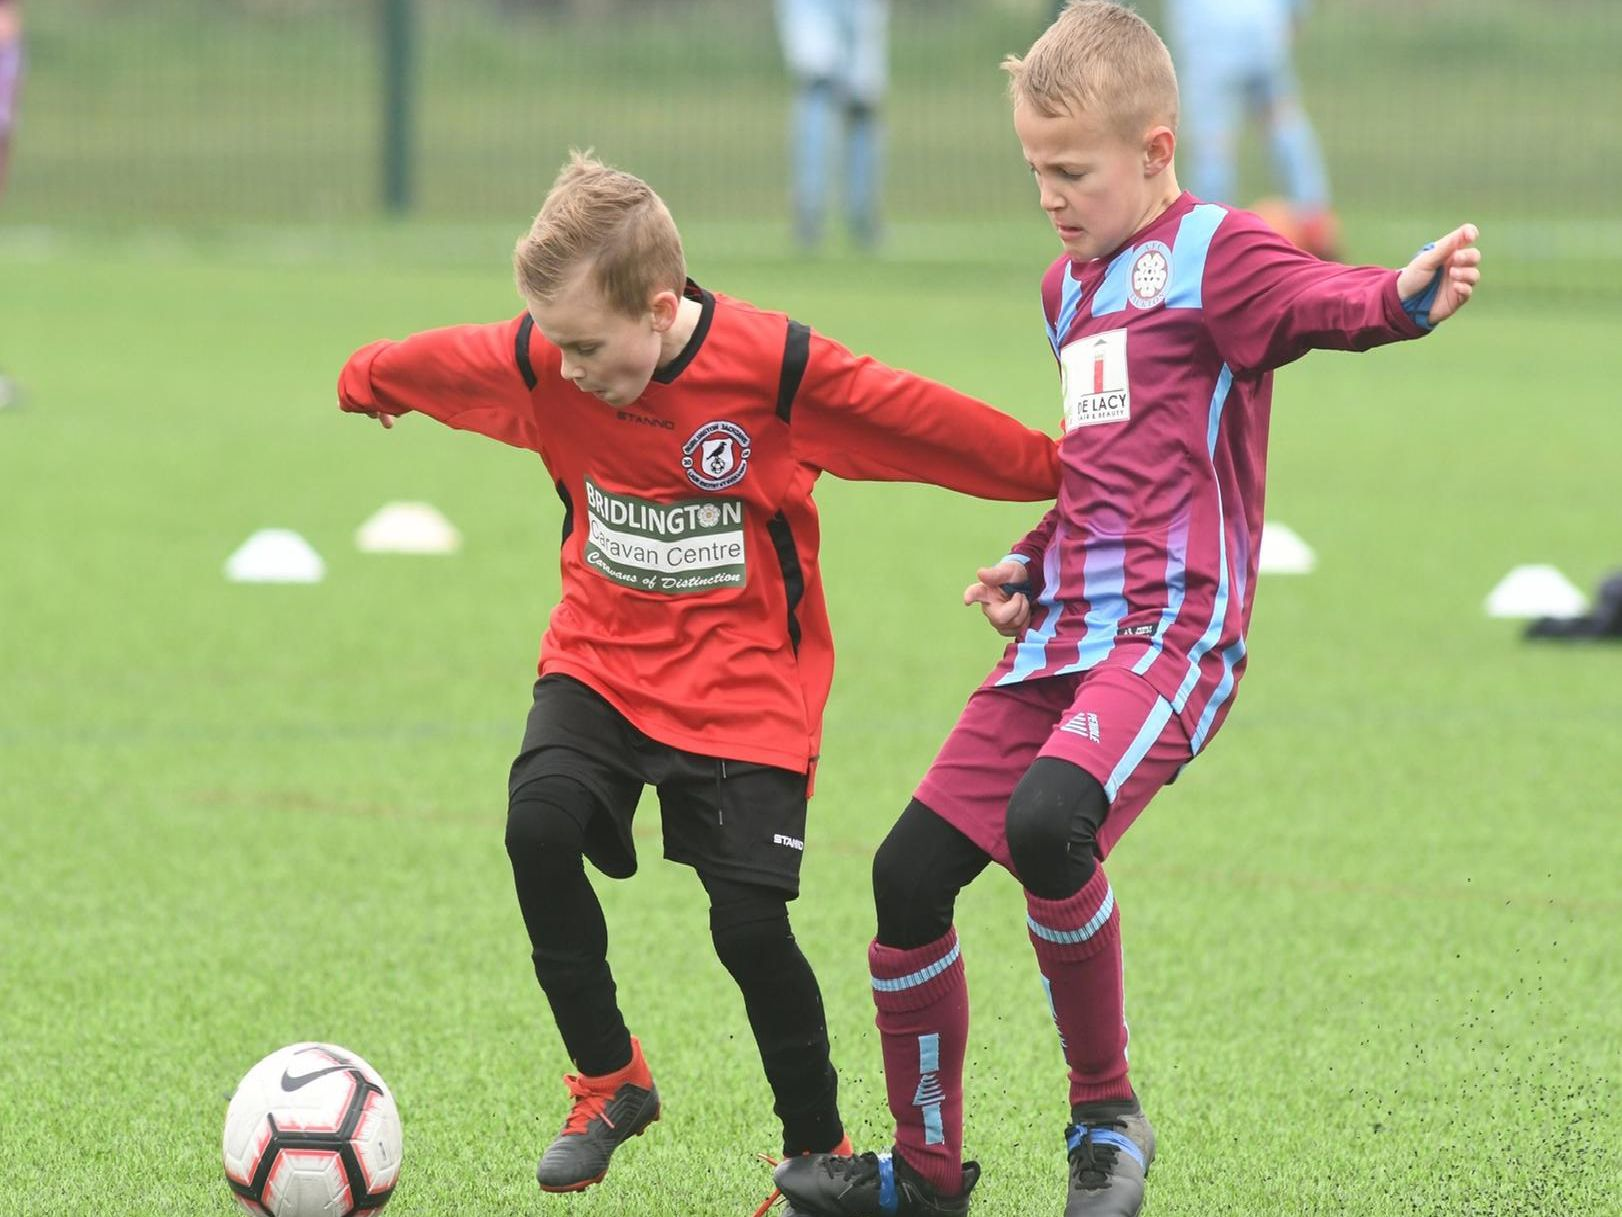 Burlington Jackdaws U8s v Tickton